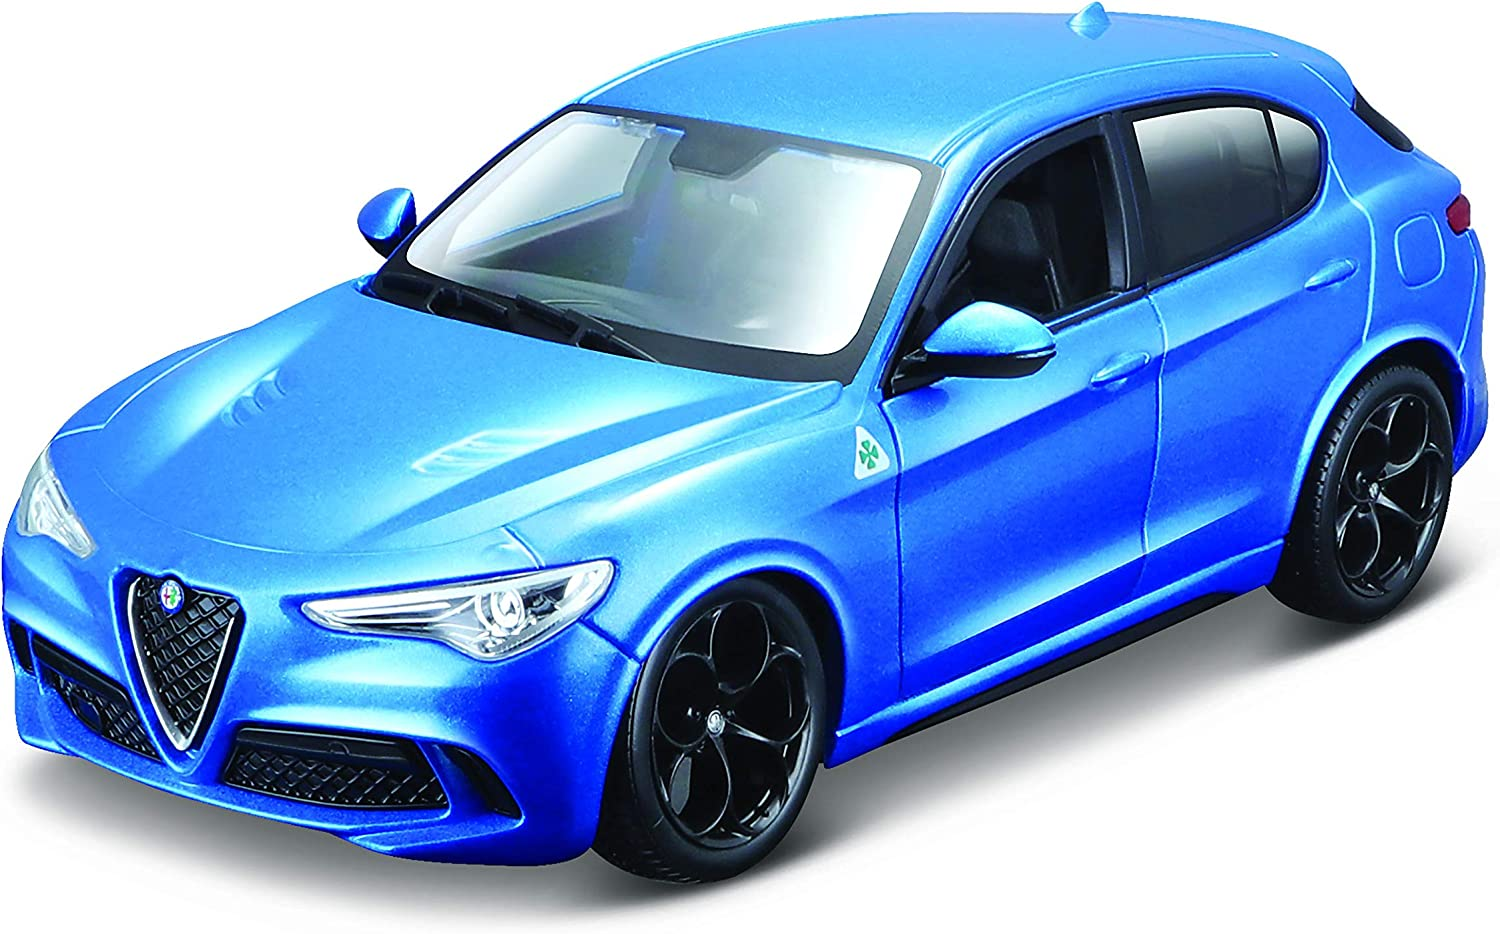 Alfa Romeo Stelvio Quadrifoglio Blue 1/24 Diecast Model Car by Bburago 21086